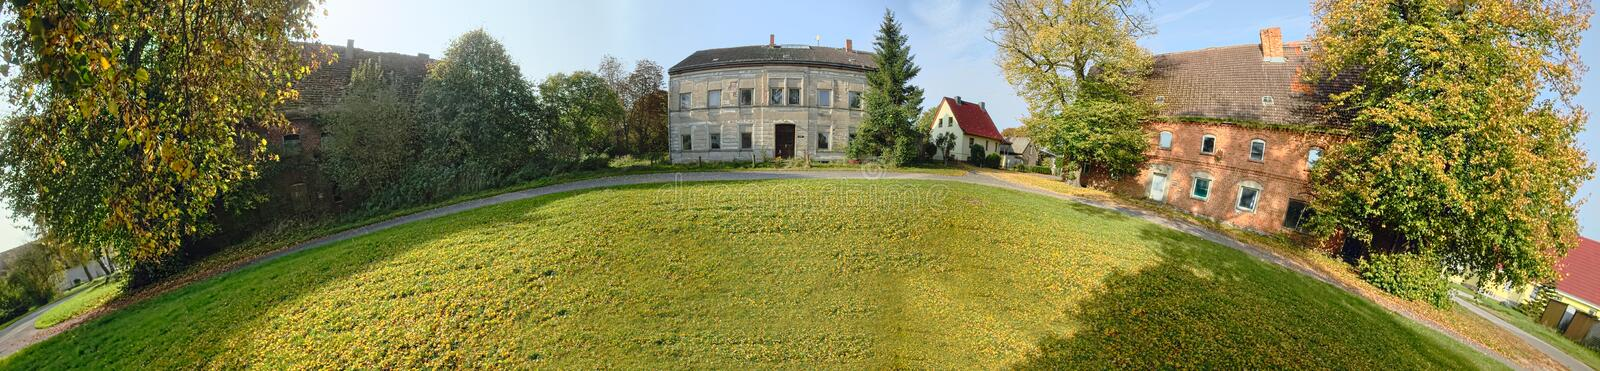 Download Historical Manor Grounds In Stilow, Mecklenburg-Vorpommern, Germany. The Buildings Are Listed As Monuments Stock Photo - Image of distortion, fisheye: 103812504